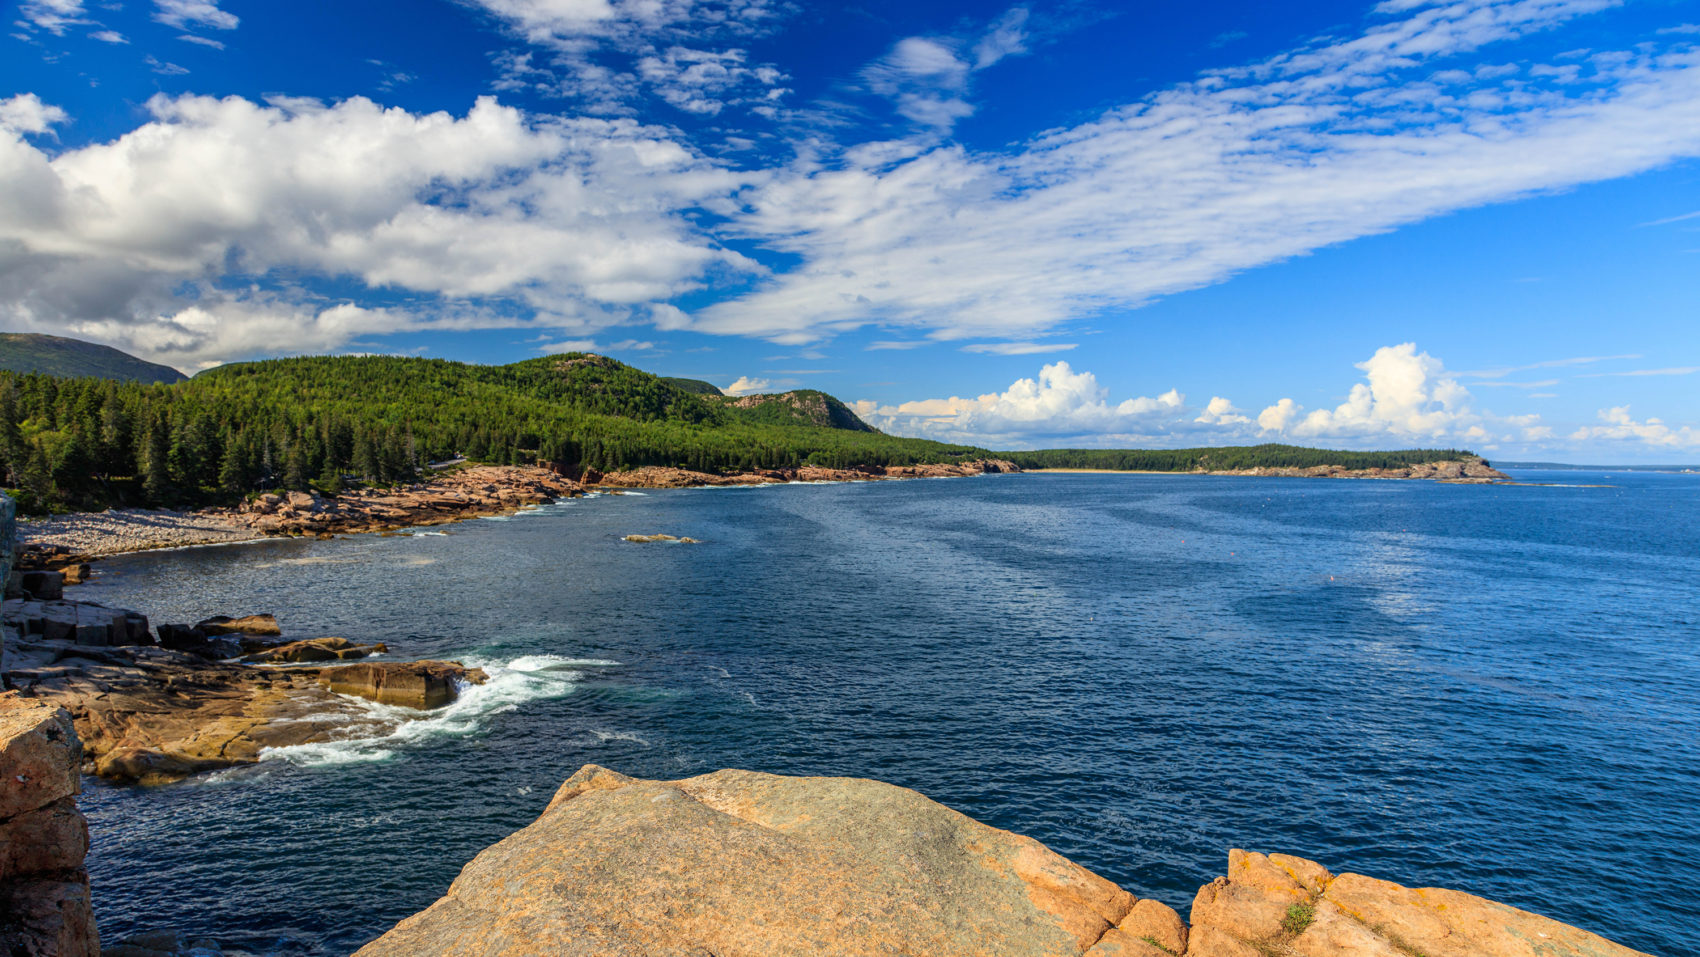 The coast of Acadia National Park as seen along the Ocean Drive section of Park Loop Road. (Kristi Rugg/NPS)